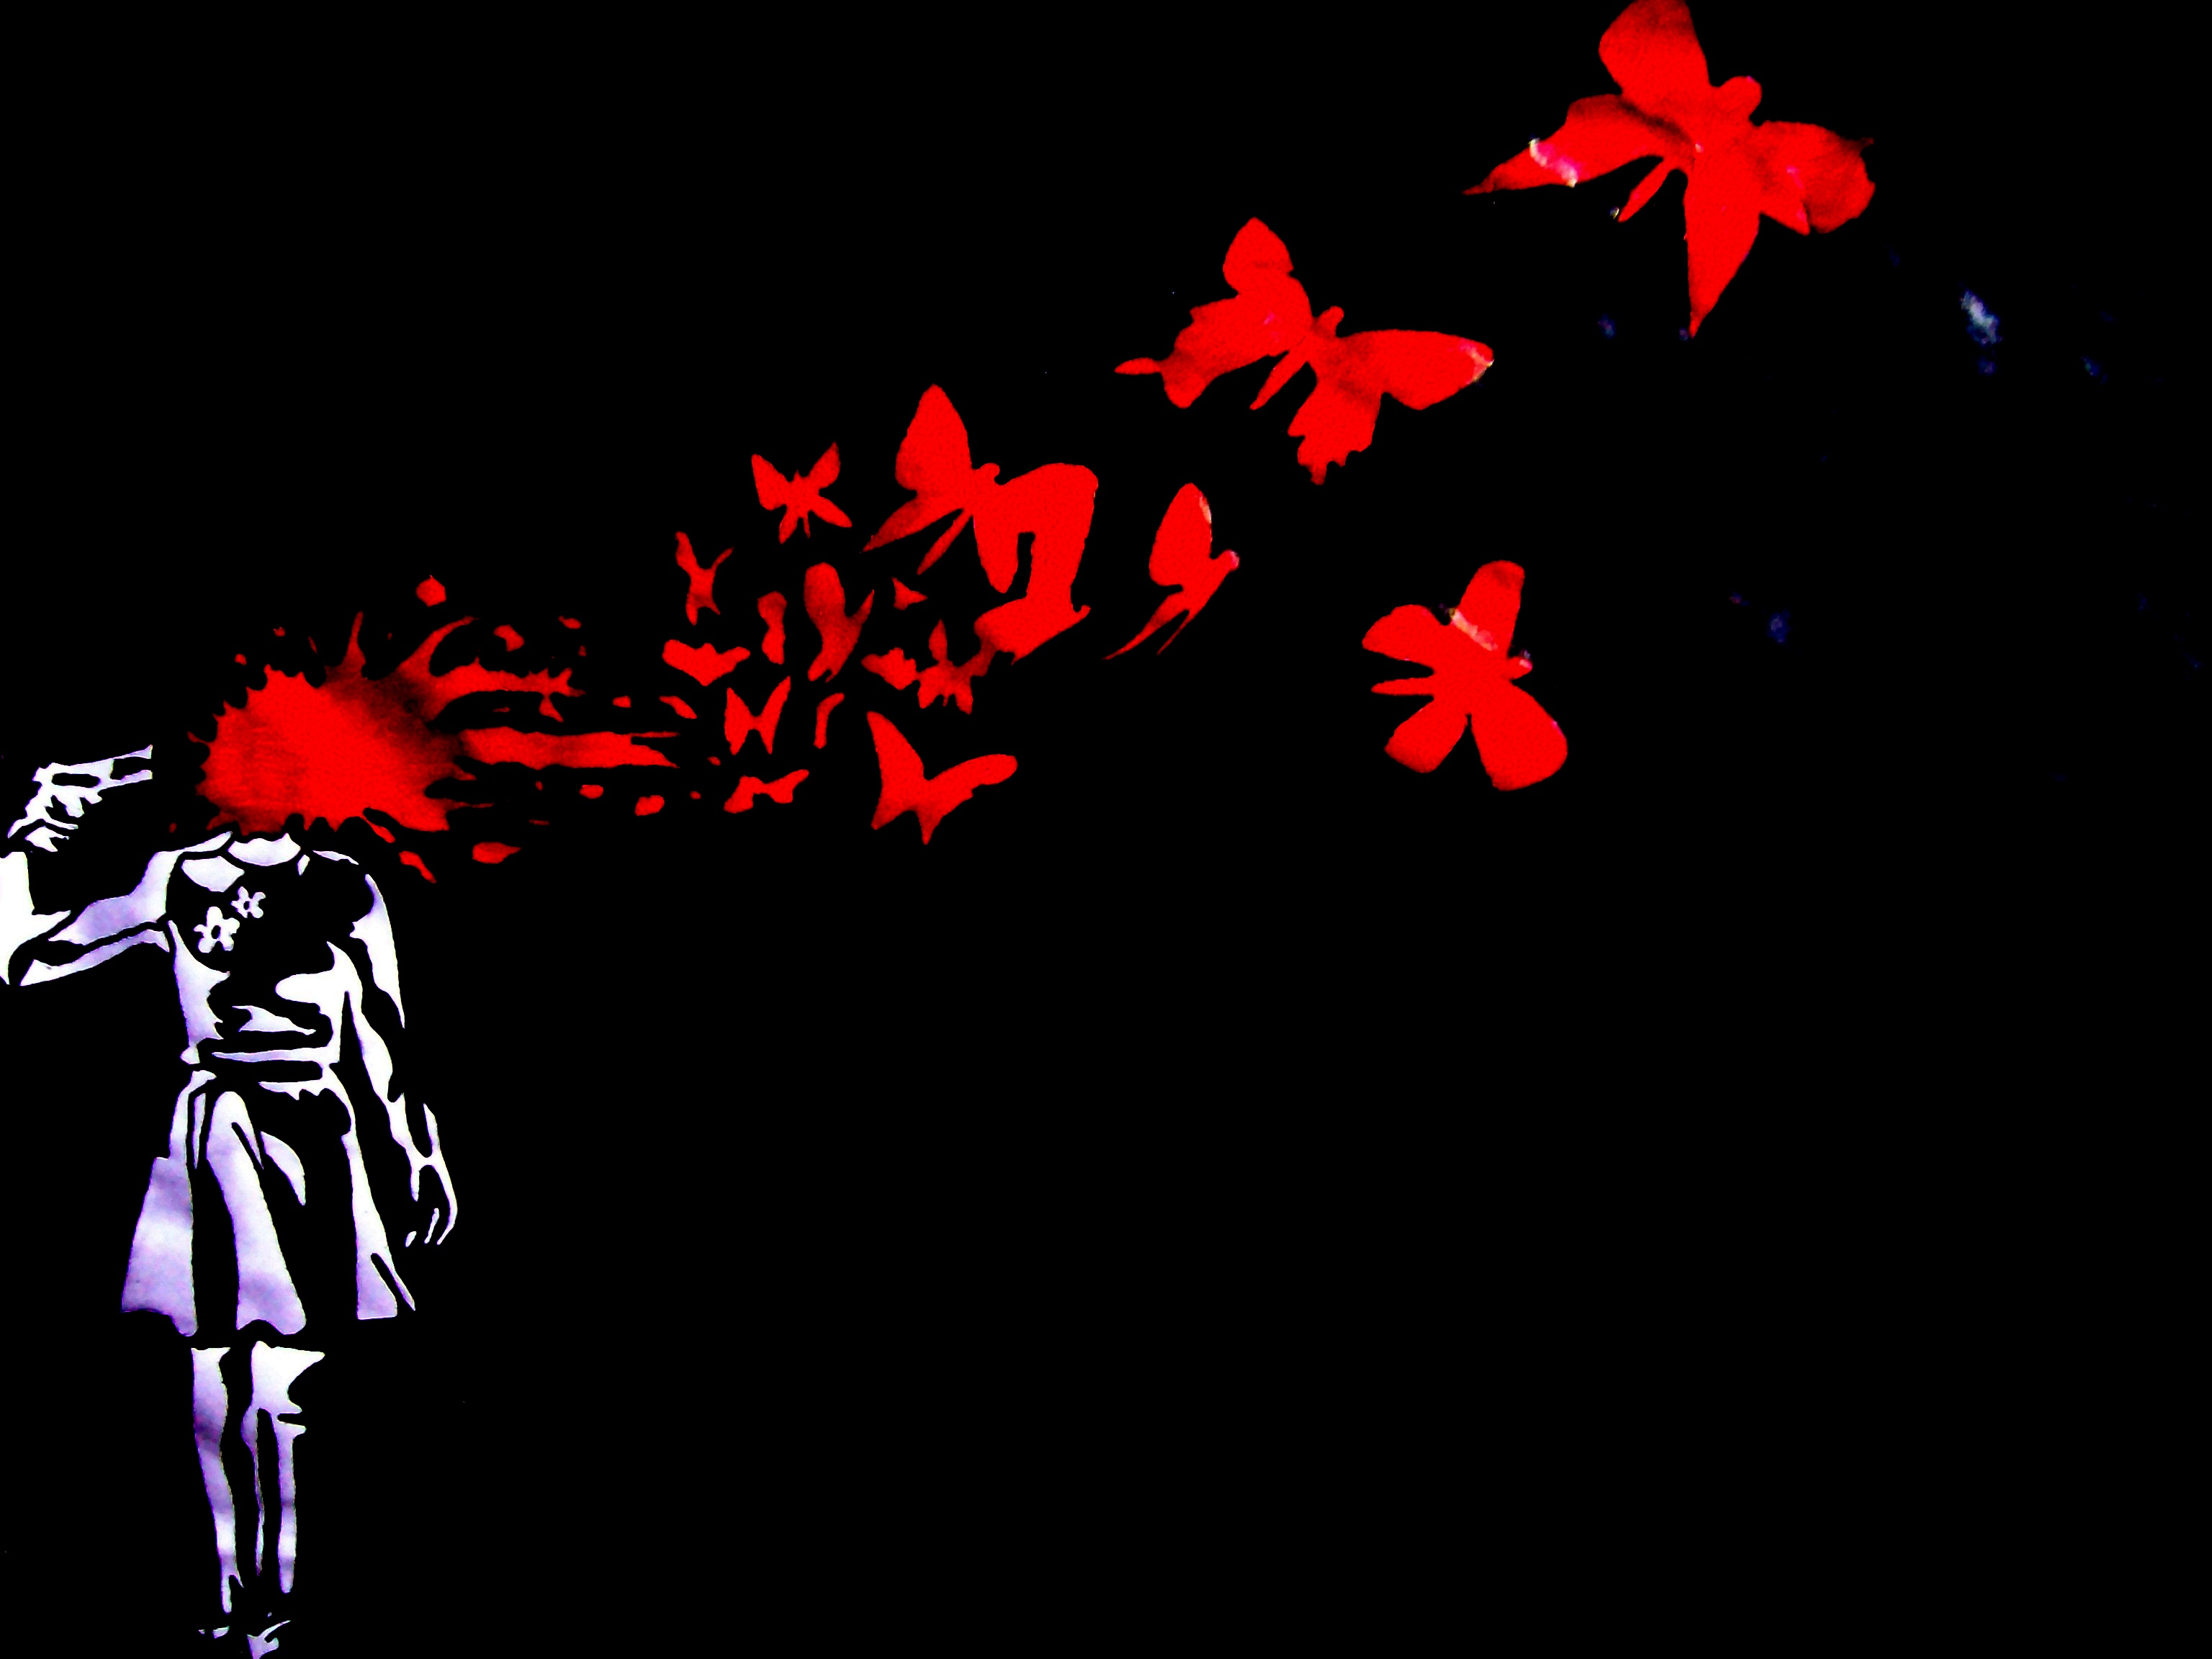 butterfly_suicide_by_mut4ti0n-d4nvlxx.jpg